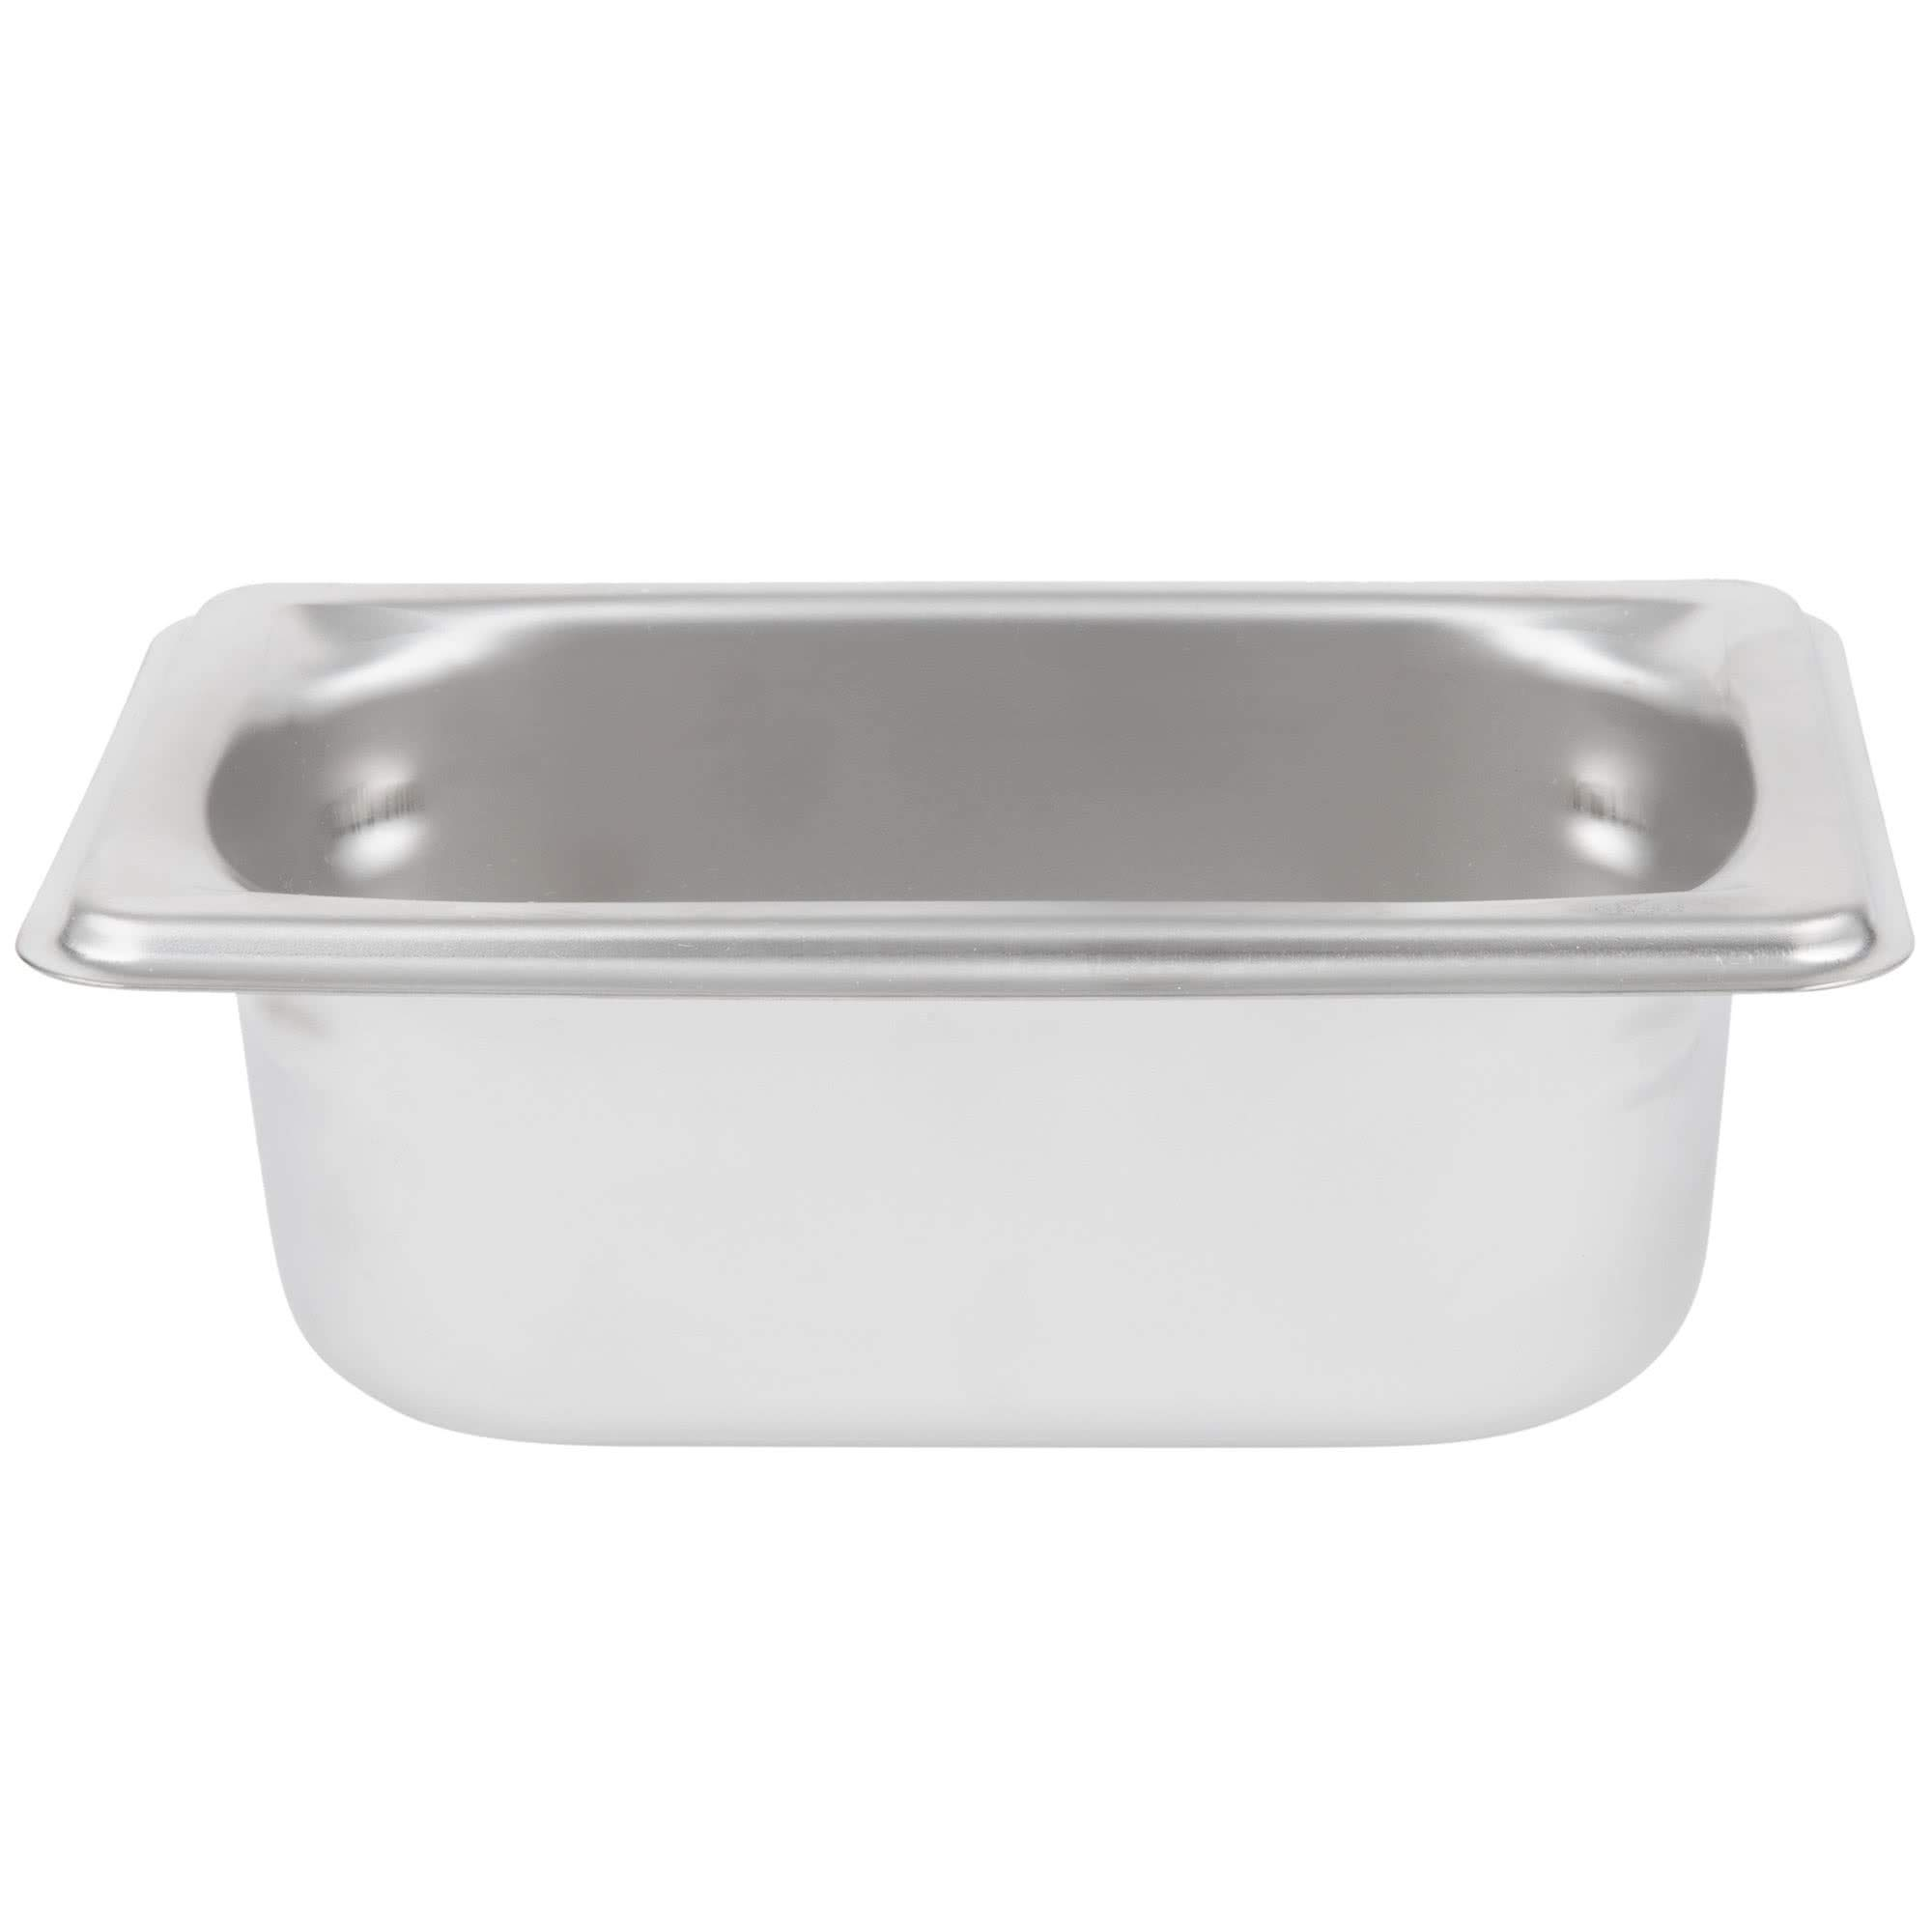 TableTop King 90922 Super Pan 3 1/9 Size Anti-Jam Stainless Steel Steam Table/Hotel Pan - 2 1/2'' Deep by TableTop King